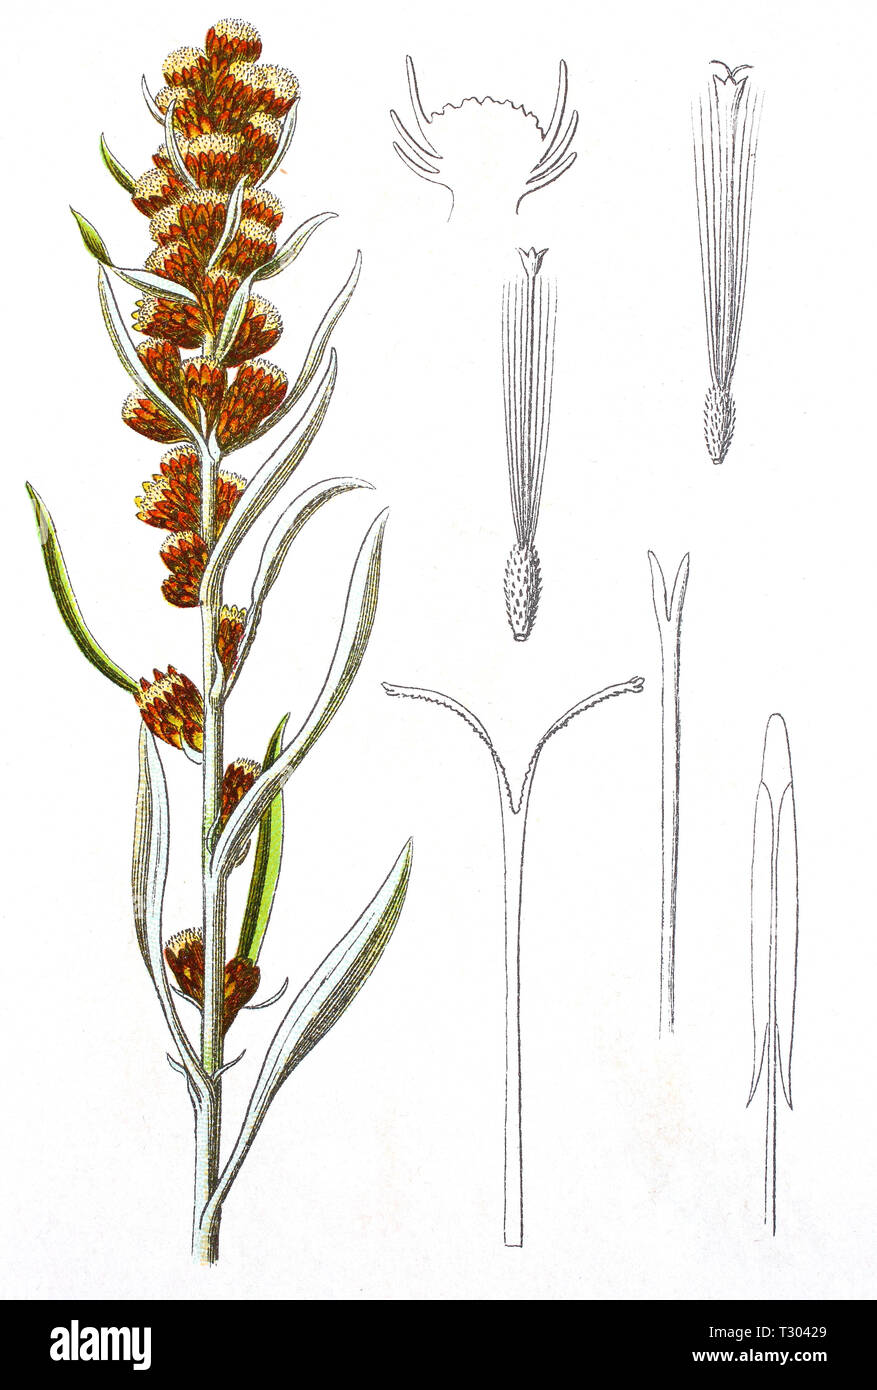 Digital improved reproduction of an illustration of, Wald-Ruhrkraut, Gnaphalium sylvaticum, heath cudweed, wood cudweed, from an original print of the 19th century - Stock Image